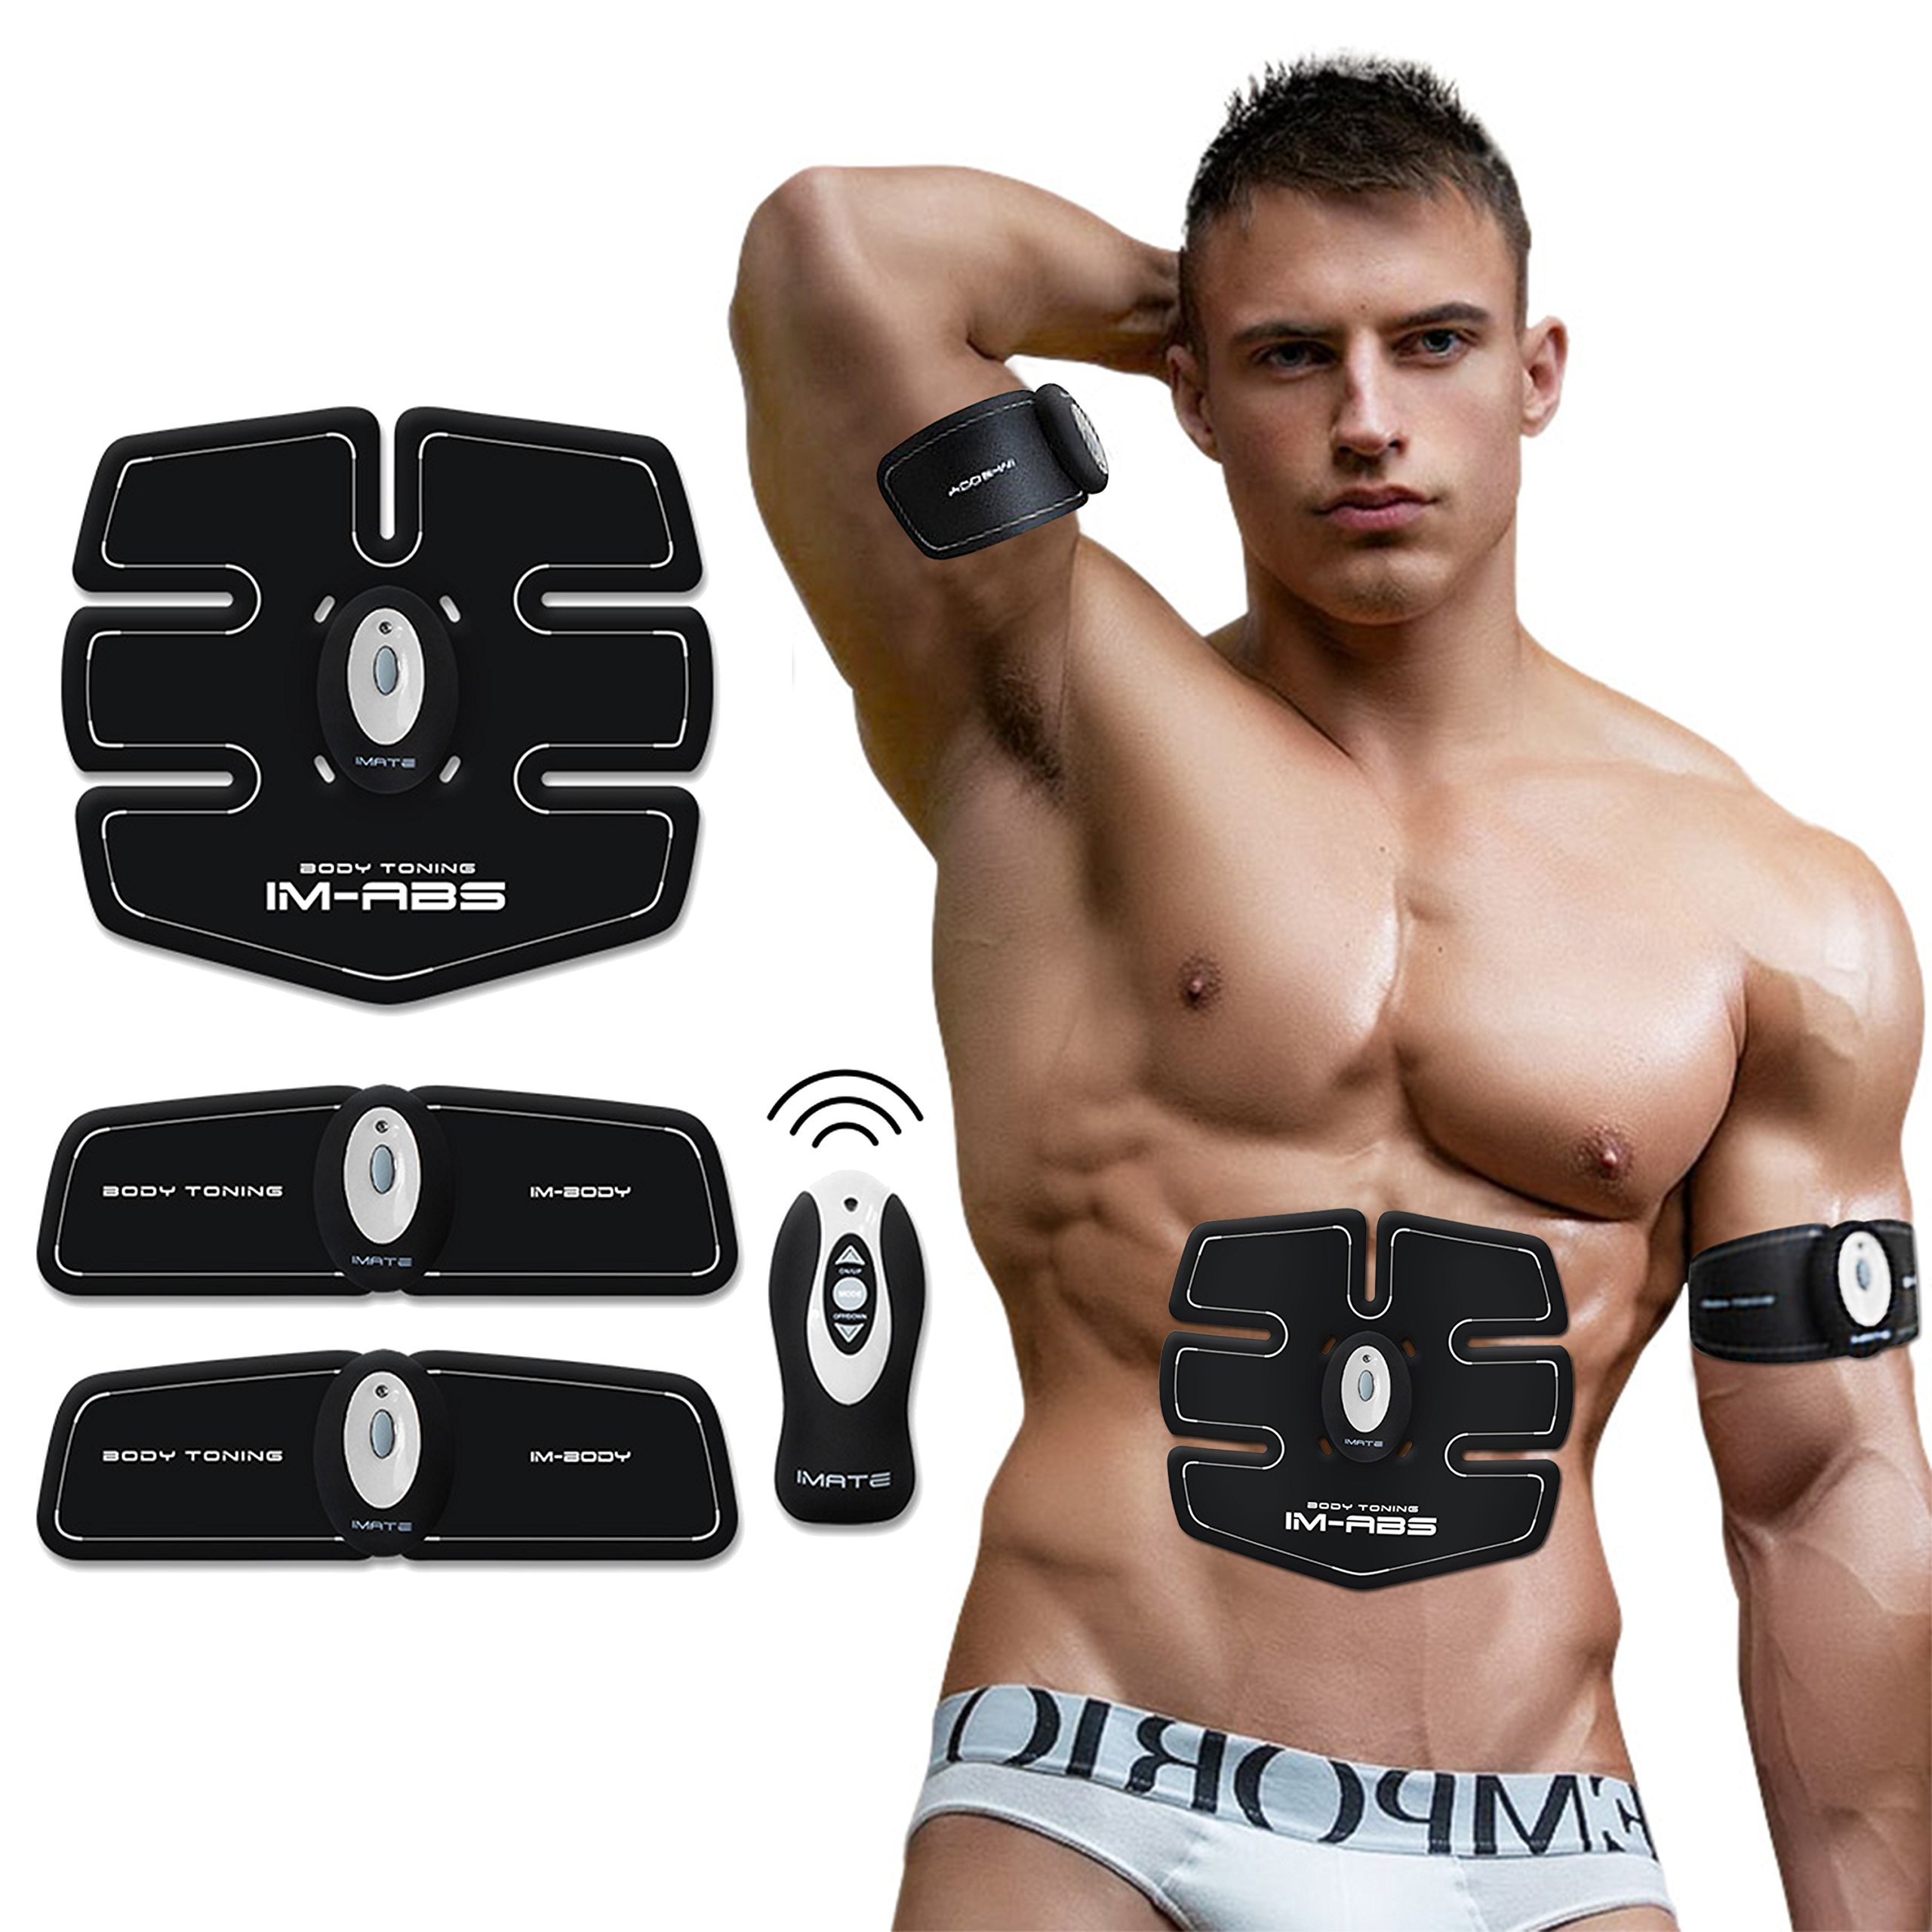 Cszlove Wireless ABS Toner Body Muscle Trainer Electronic Muscle Stimulation Fitness System ABS Fit Body Fit Arm Body Massager for Men - White